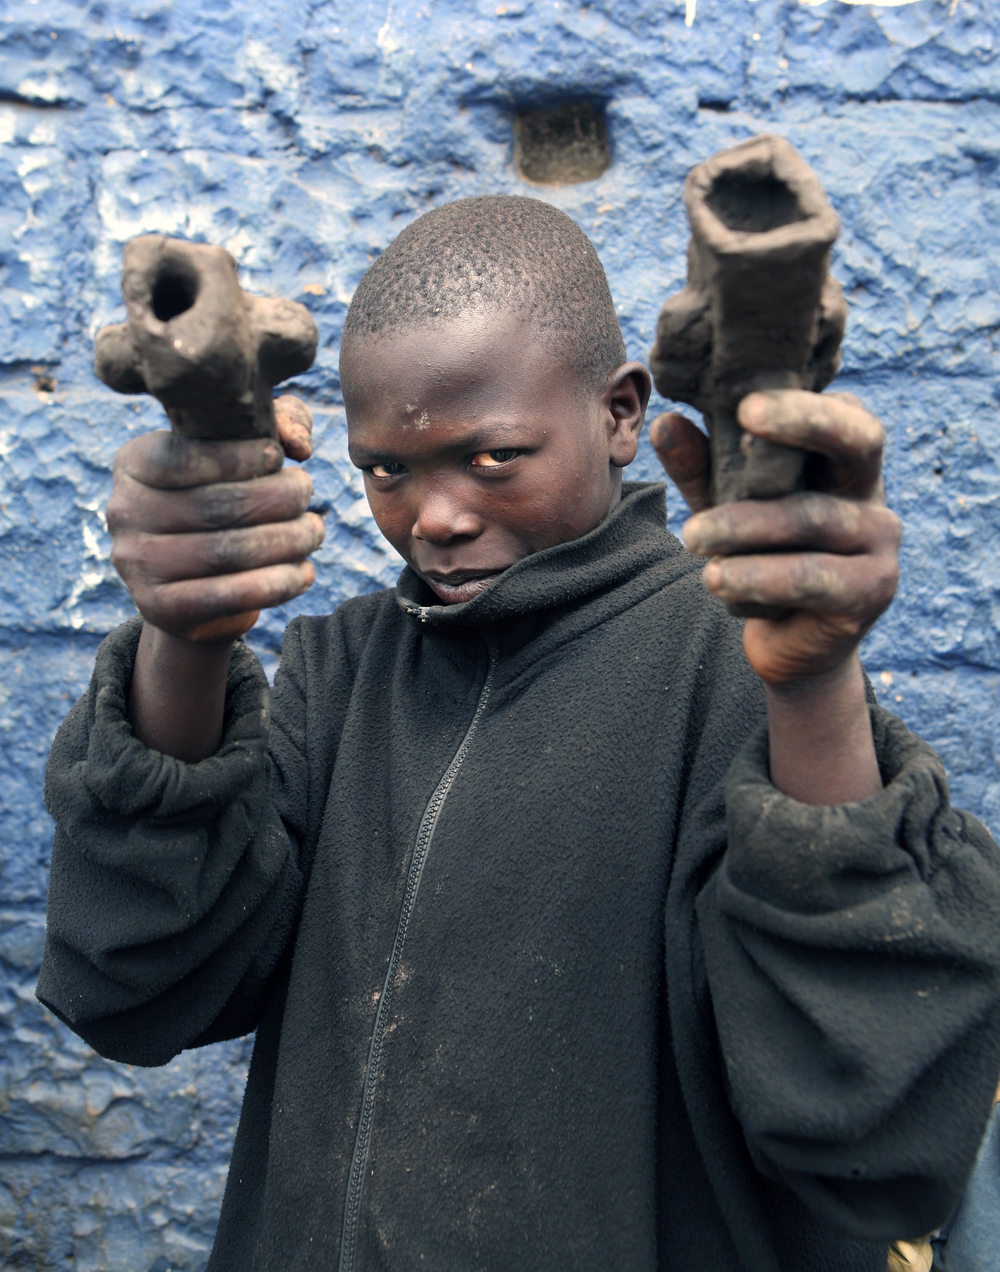 A boy plays with mud pistols in Mathare slum of Nairobi. Mathare Valley is one of the five large slums in Nairobi Kenya and one of the most dangerous slums